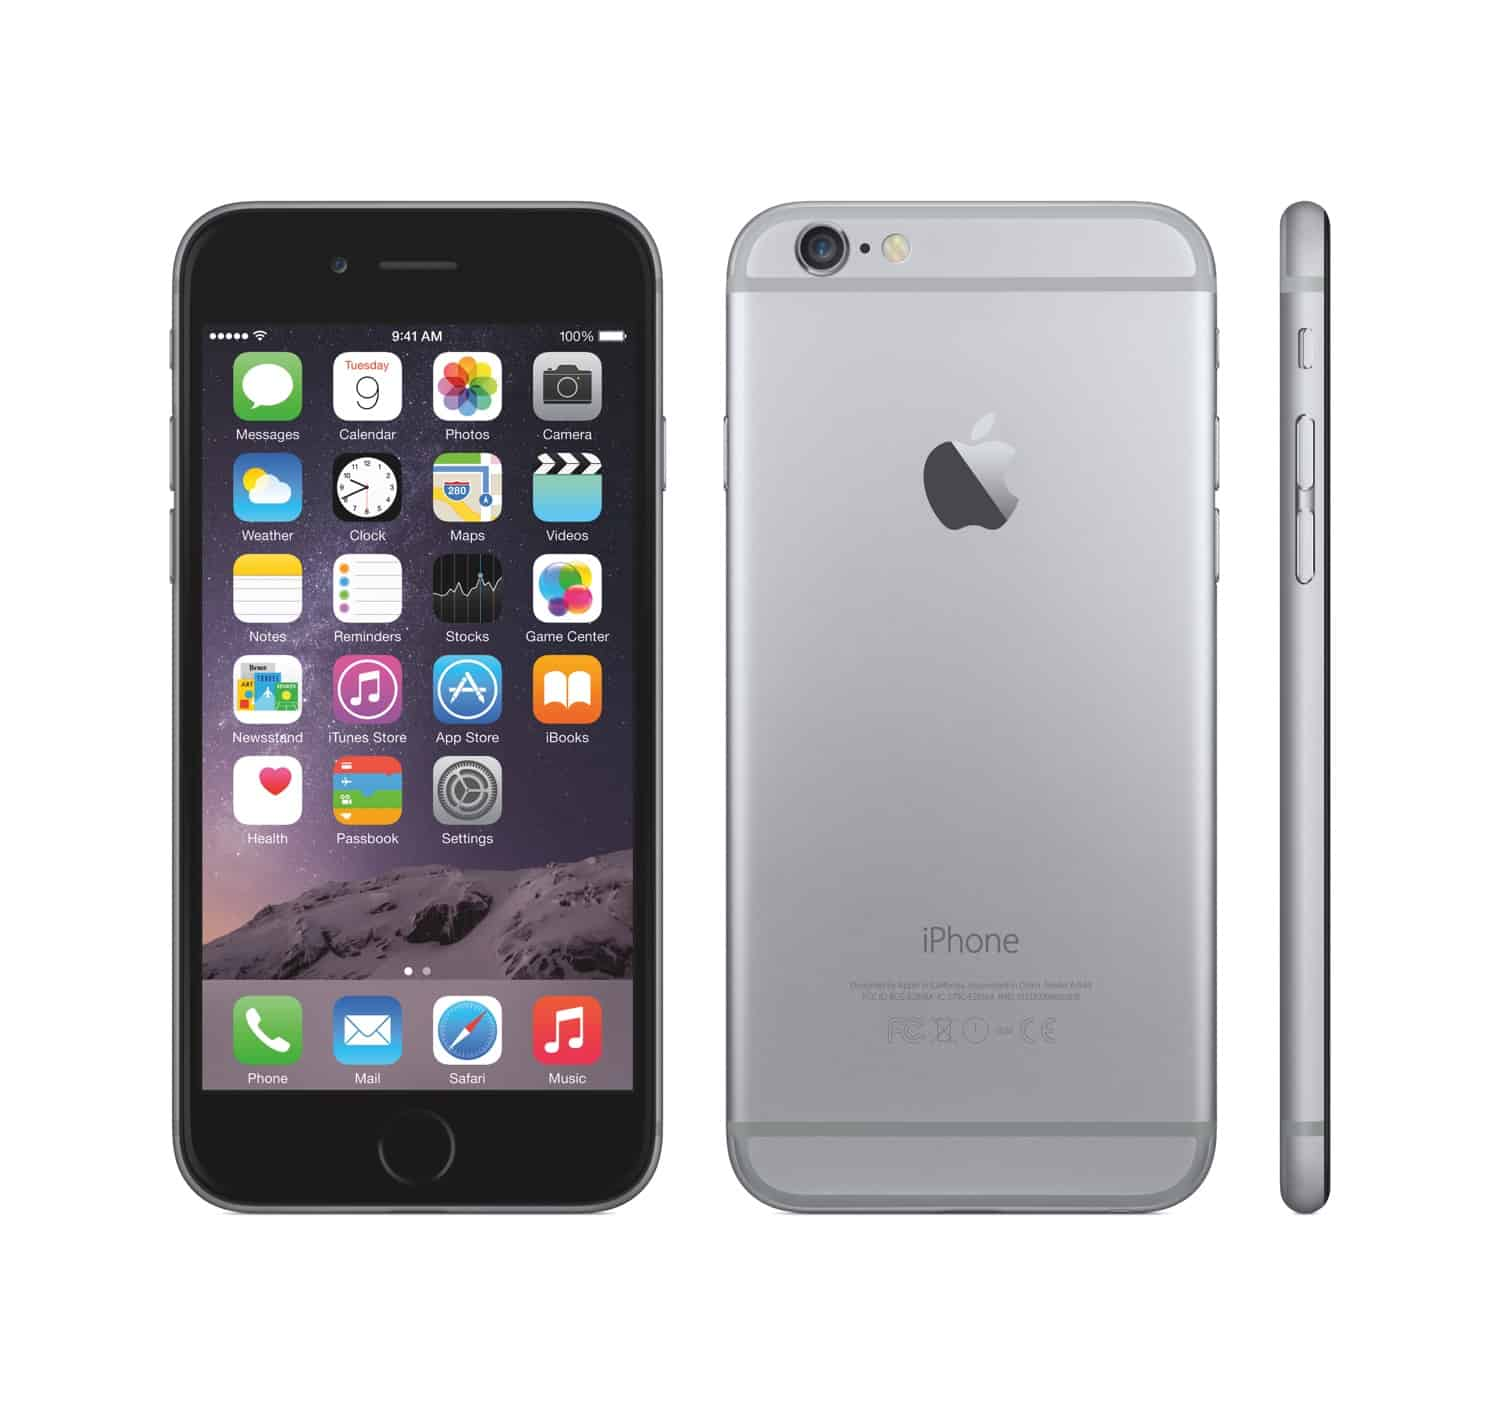 iphone 3gs manual network selection